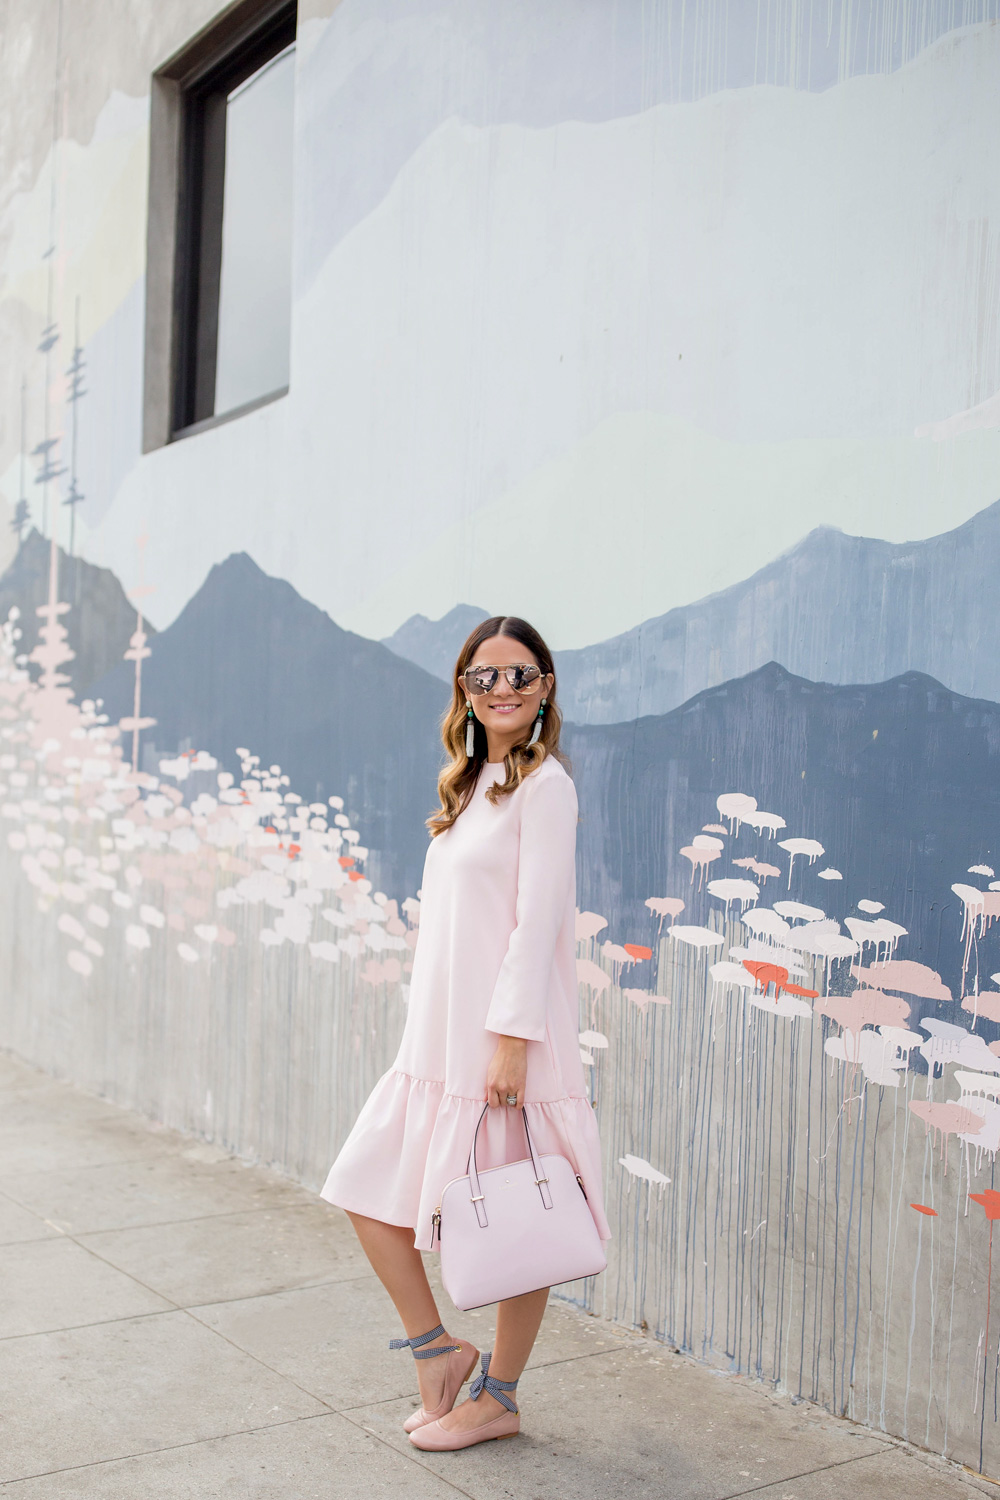 Jennifer Lake Style Charade in a pink Edit Easy Dress from Shopbop, Steve Madden Meow tie up flats, and a pink Kate Spade bag at a Los Angeles Kim West mural street art